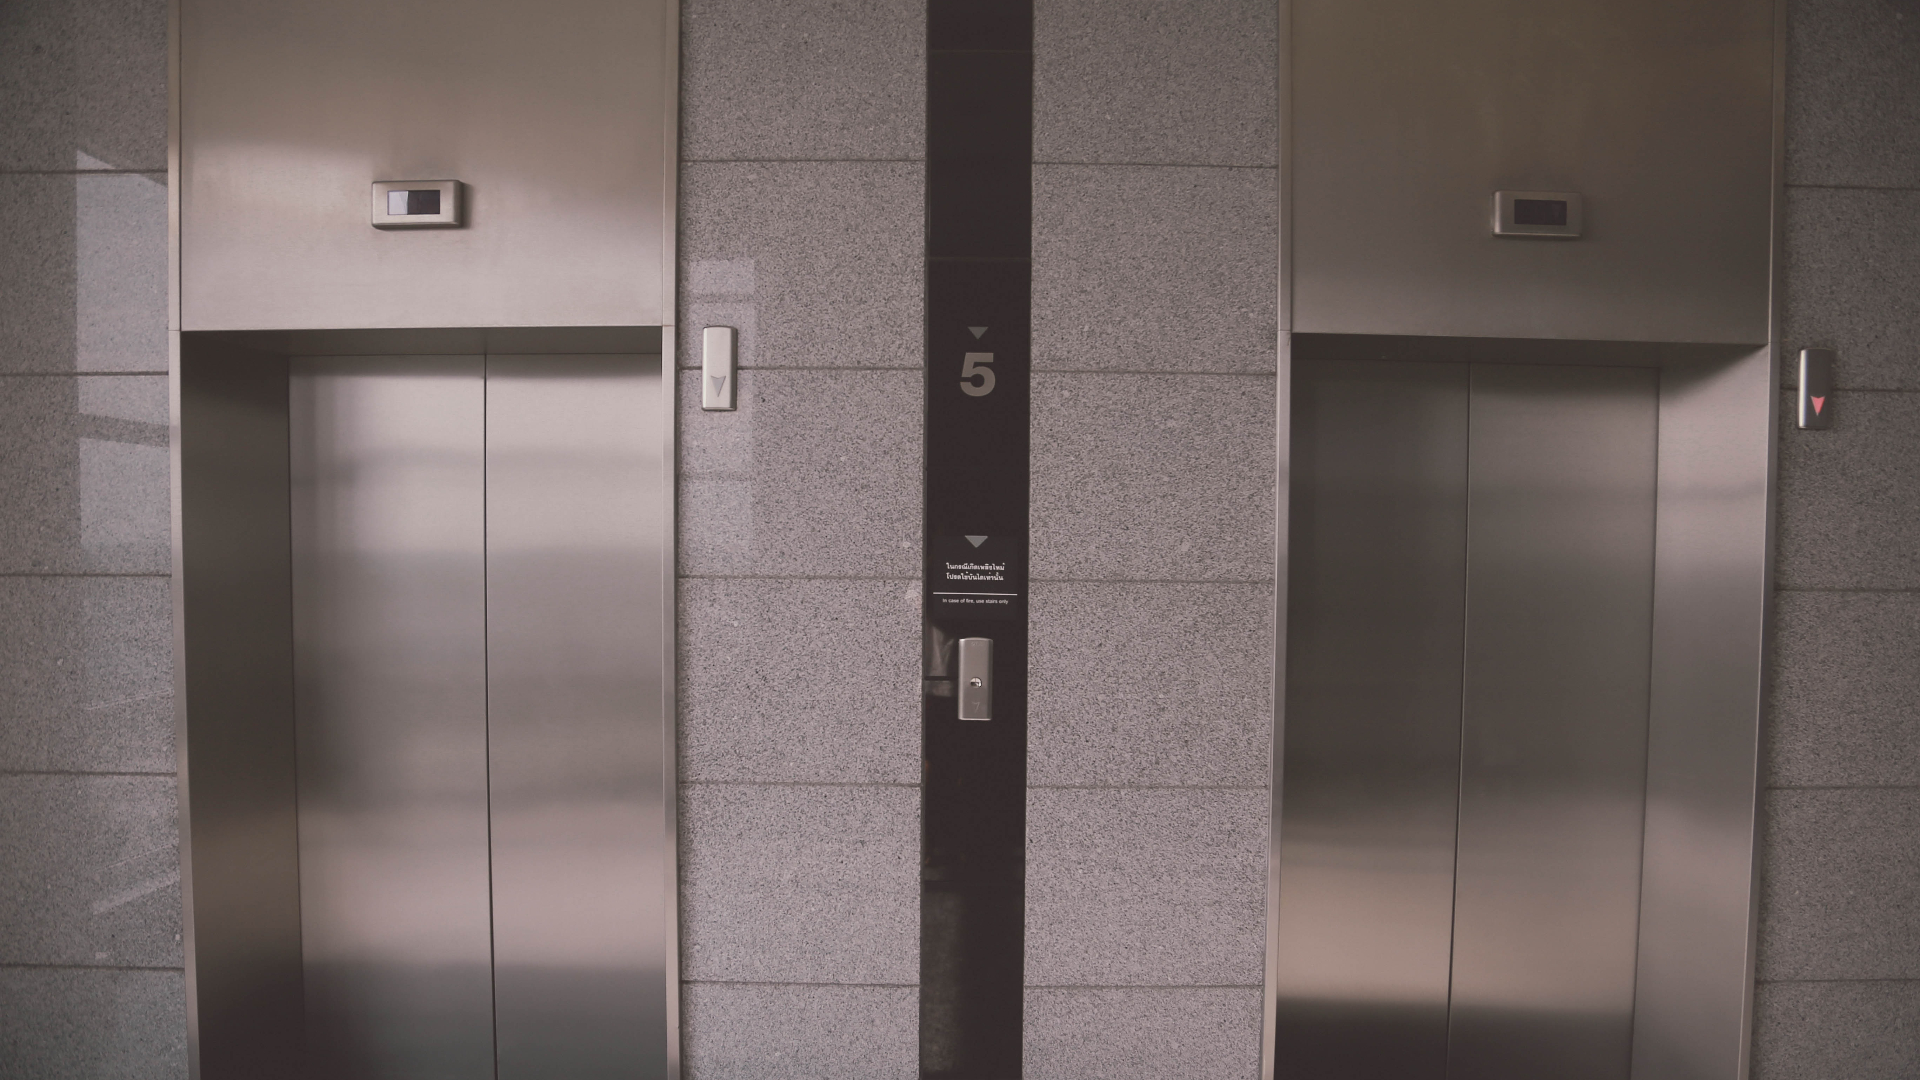 could transfer of fibres in a lift incriminate someone